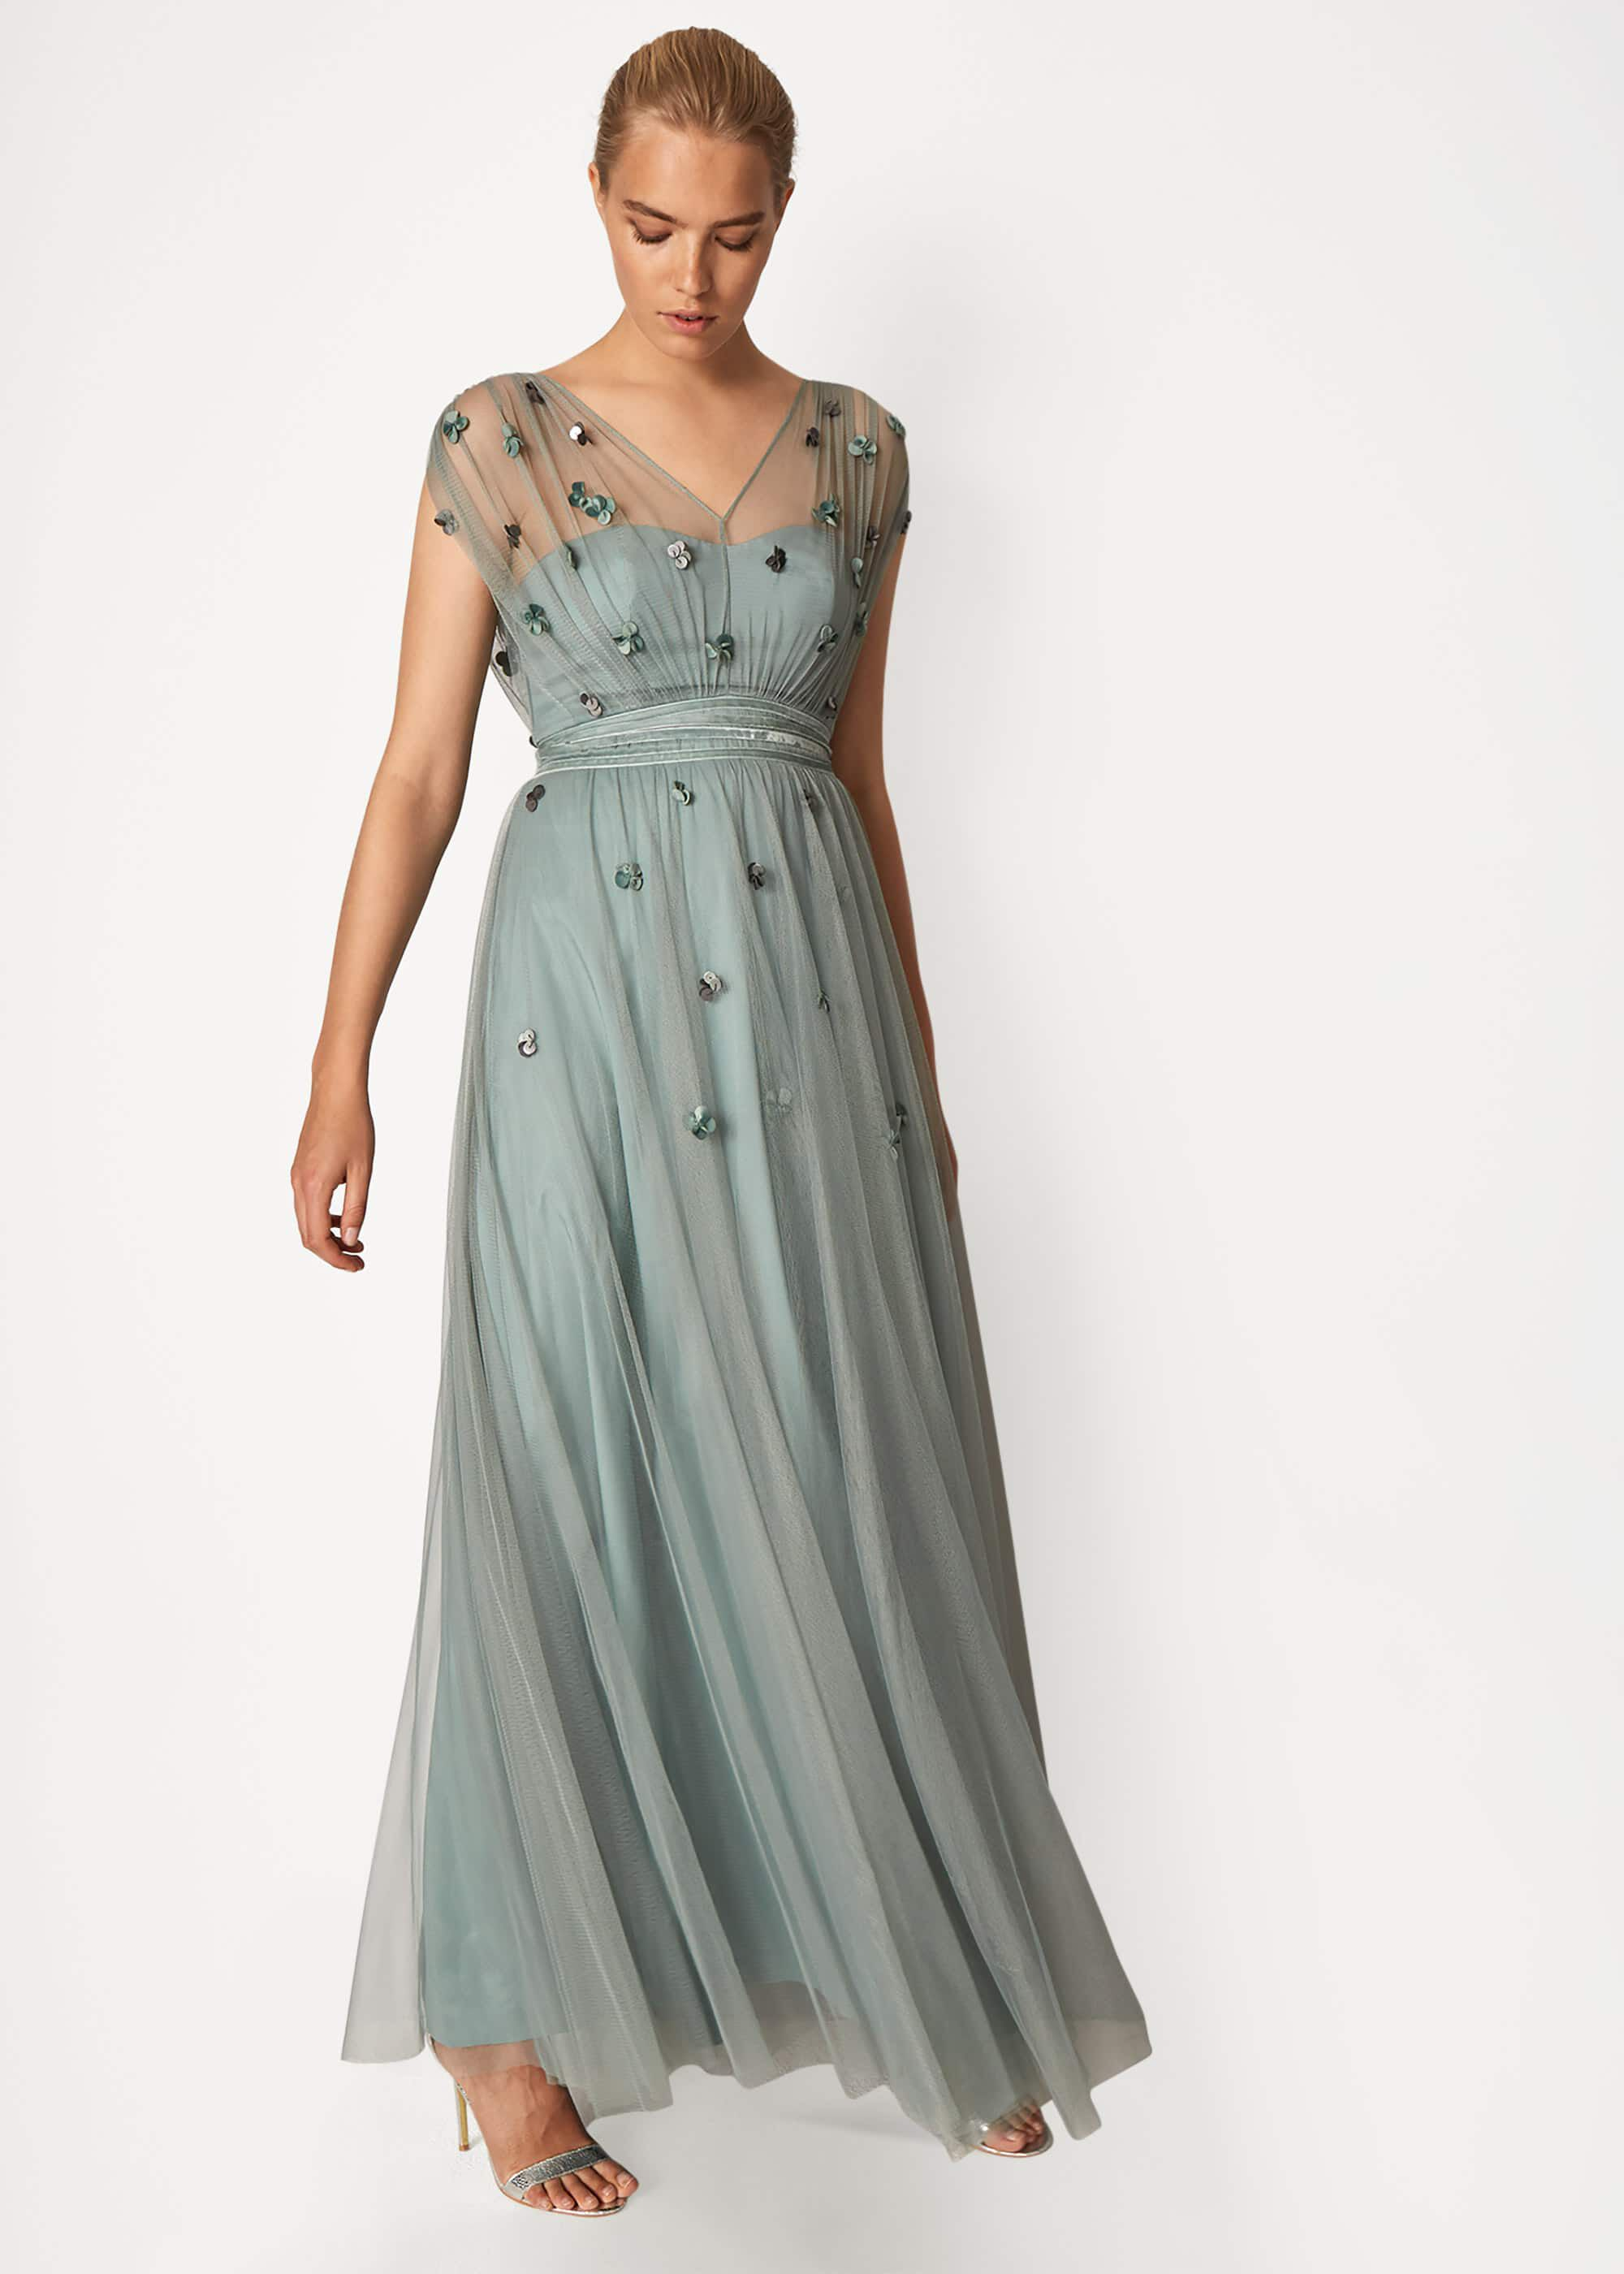 Phase Eight Bridesmaid Dresses Mother Of The Bride Wedding